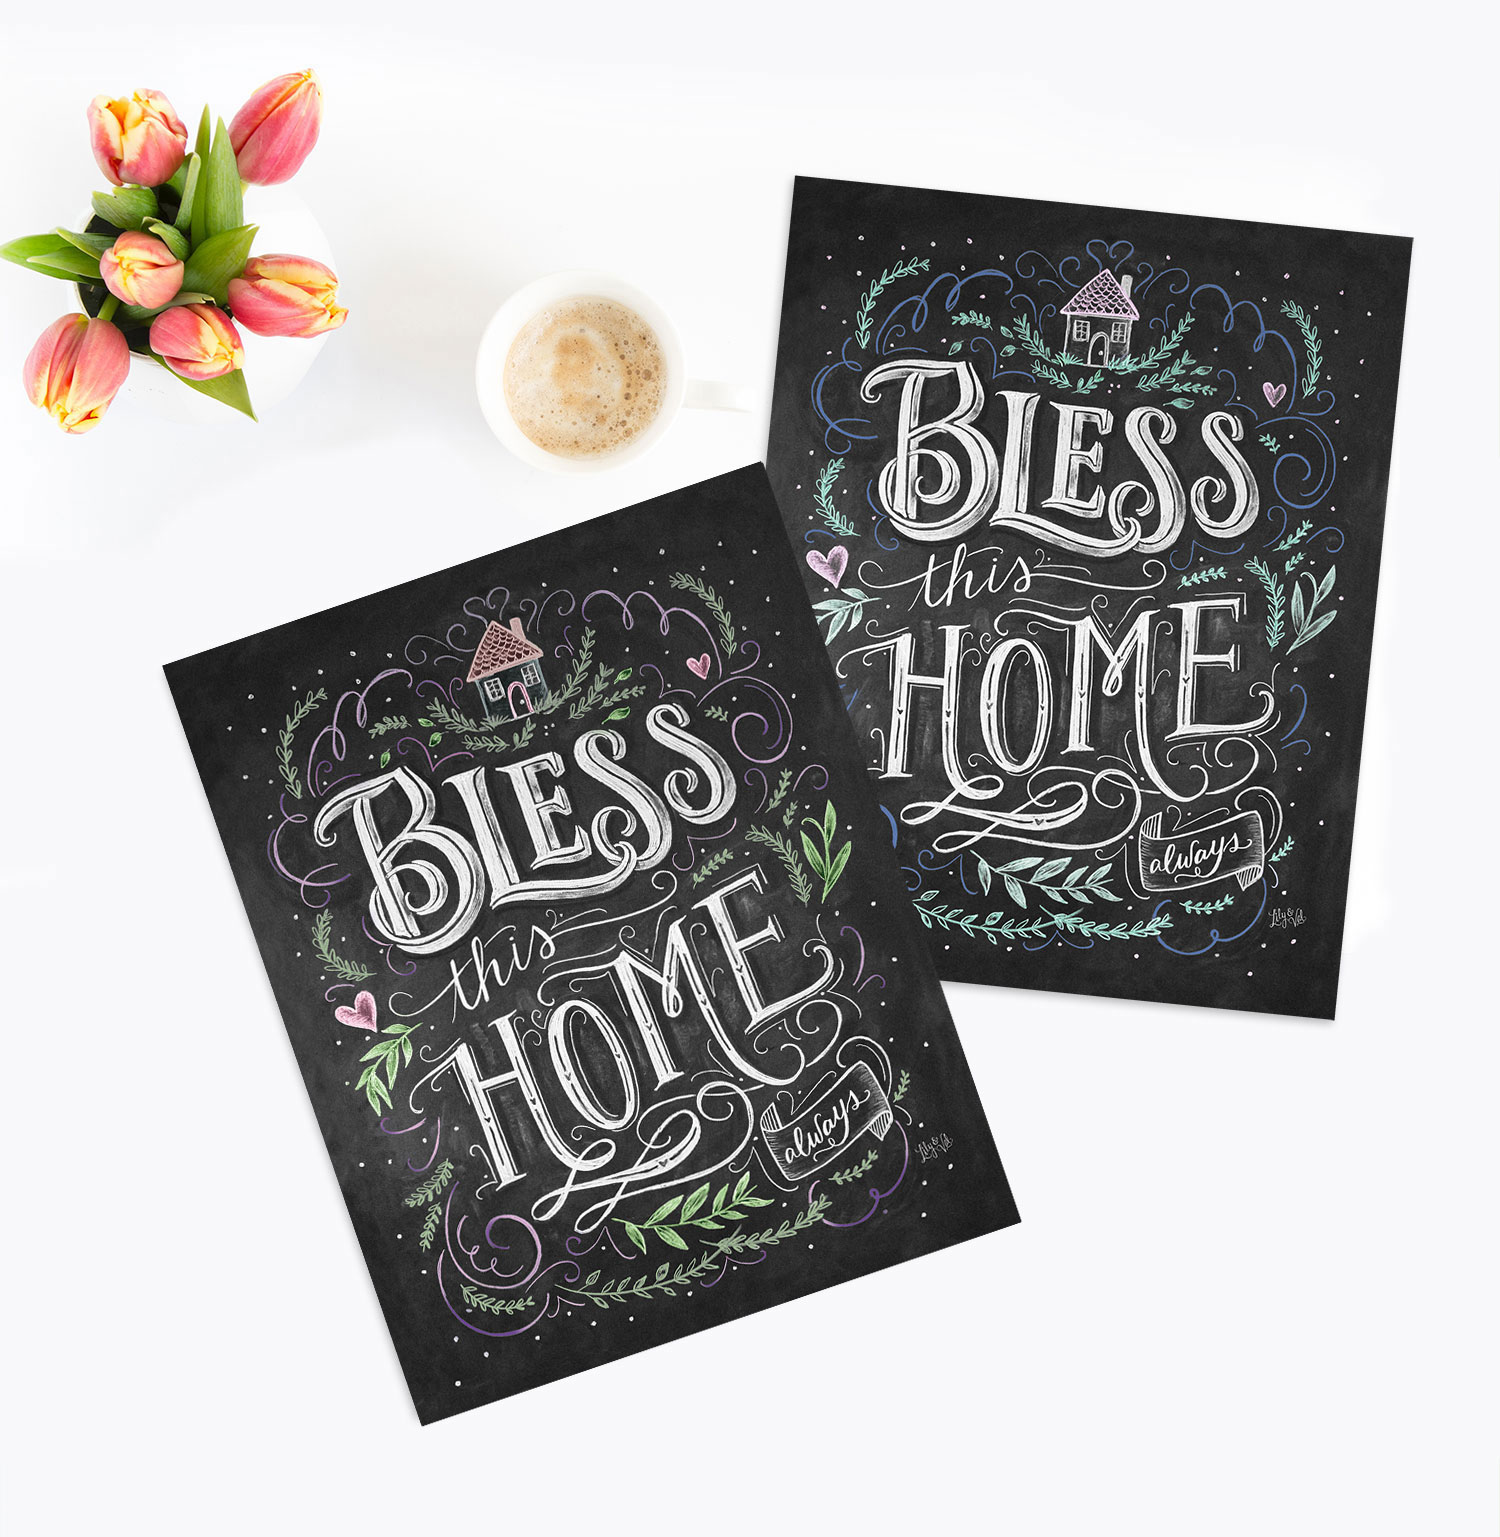 Bless This Home Chalk Art Print in two colors